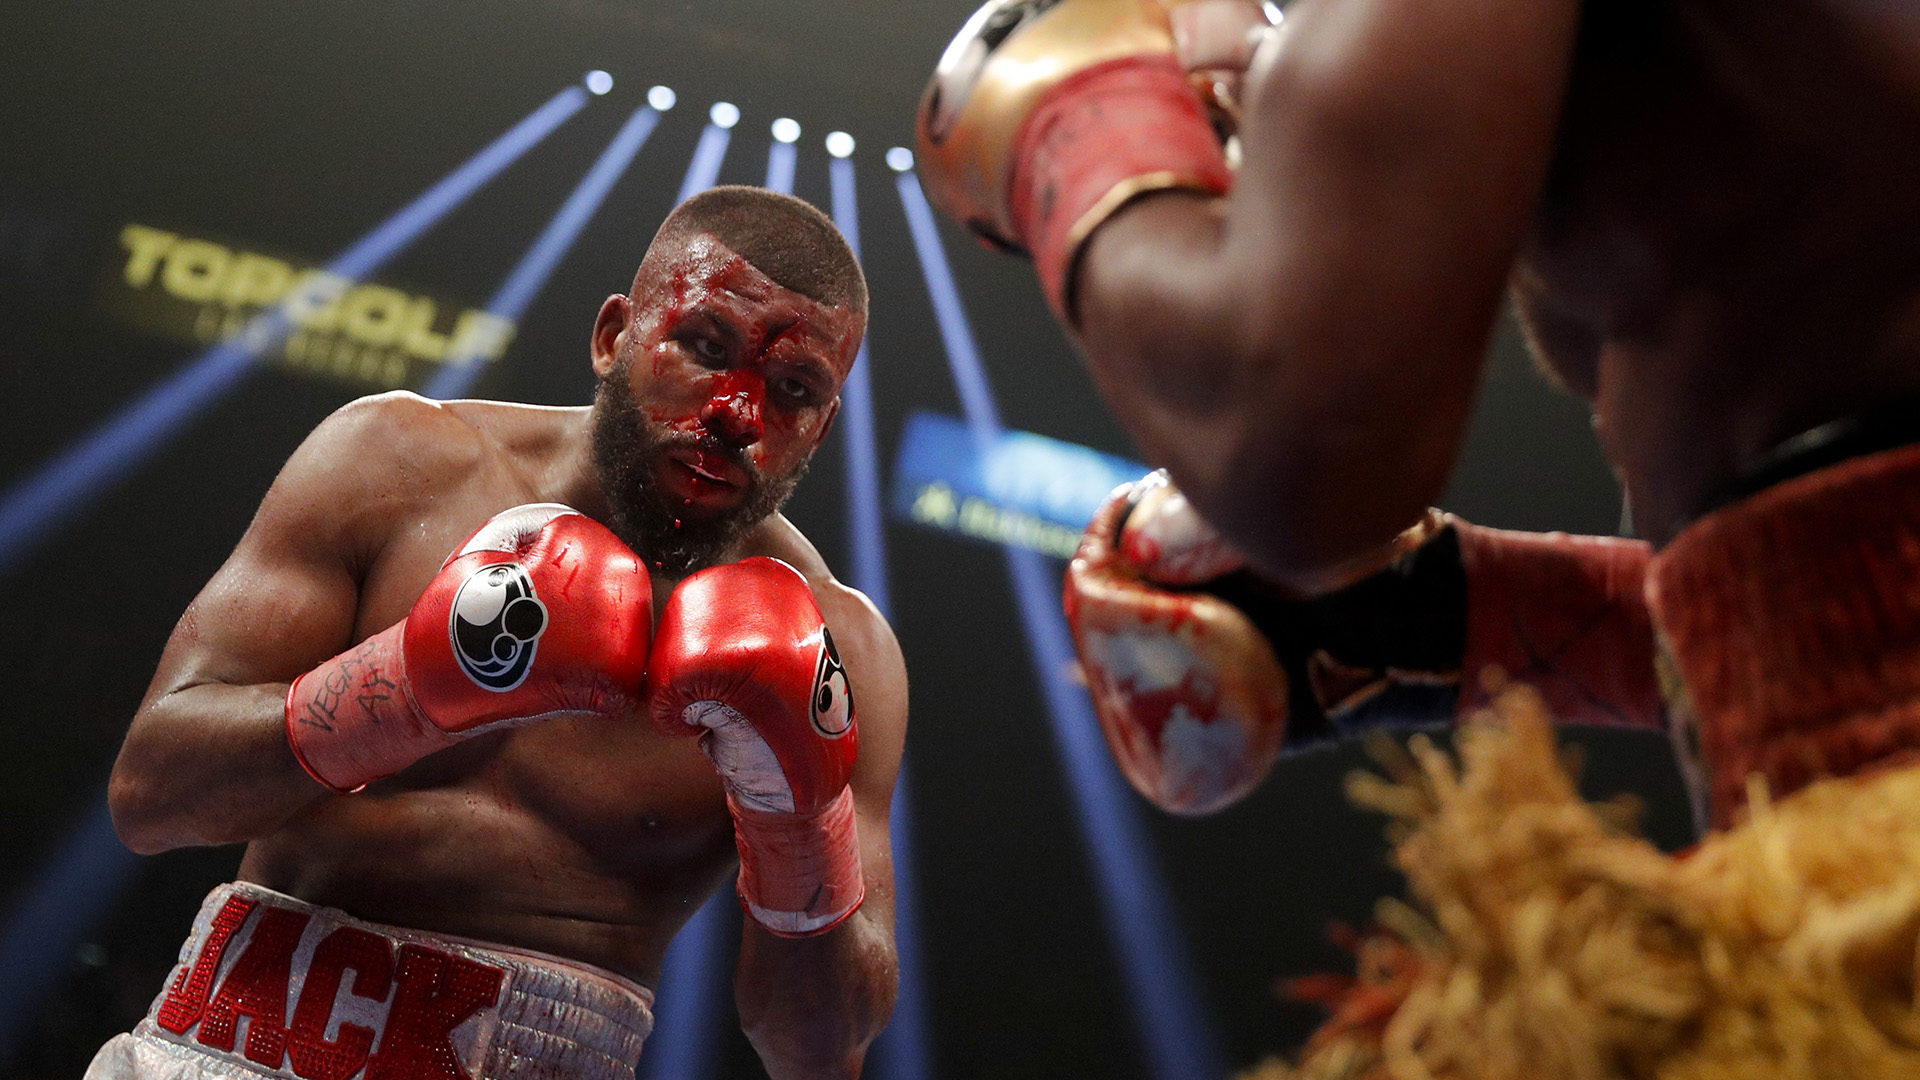 Badou Jack, left, fights Marcus Browne in the WBA interim light heavyweight title boxing bout Saturday, Jan. 19, 2019, in Las Vegas. (AP Photo/John Locher)